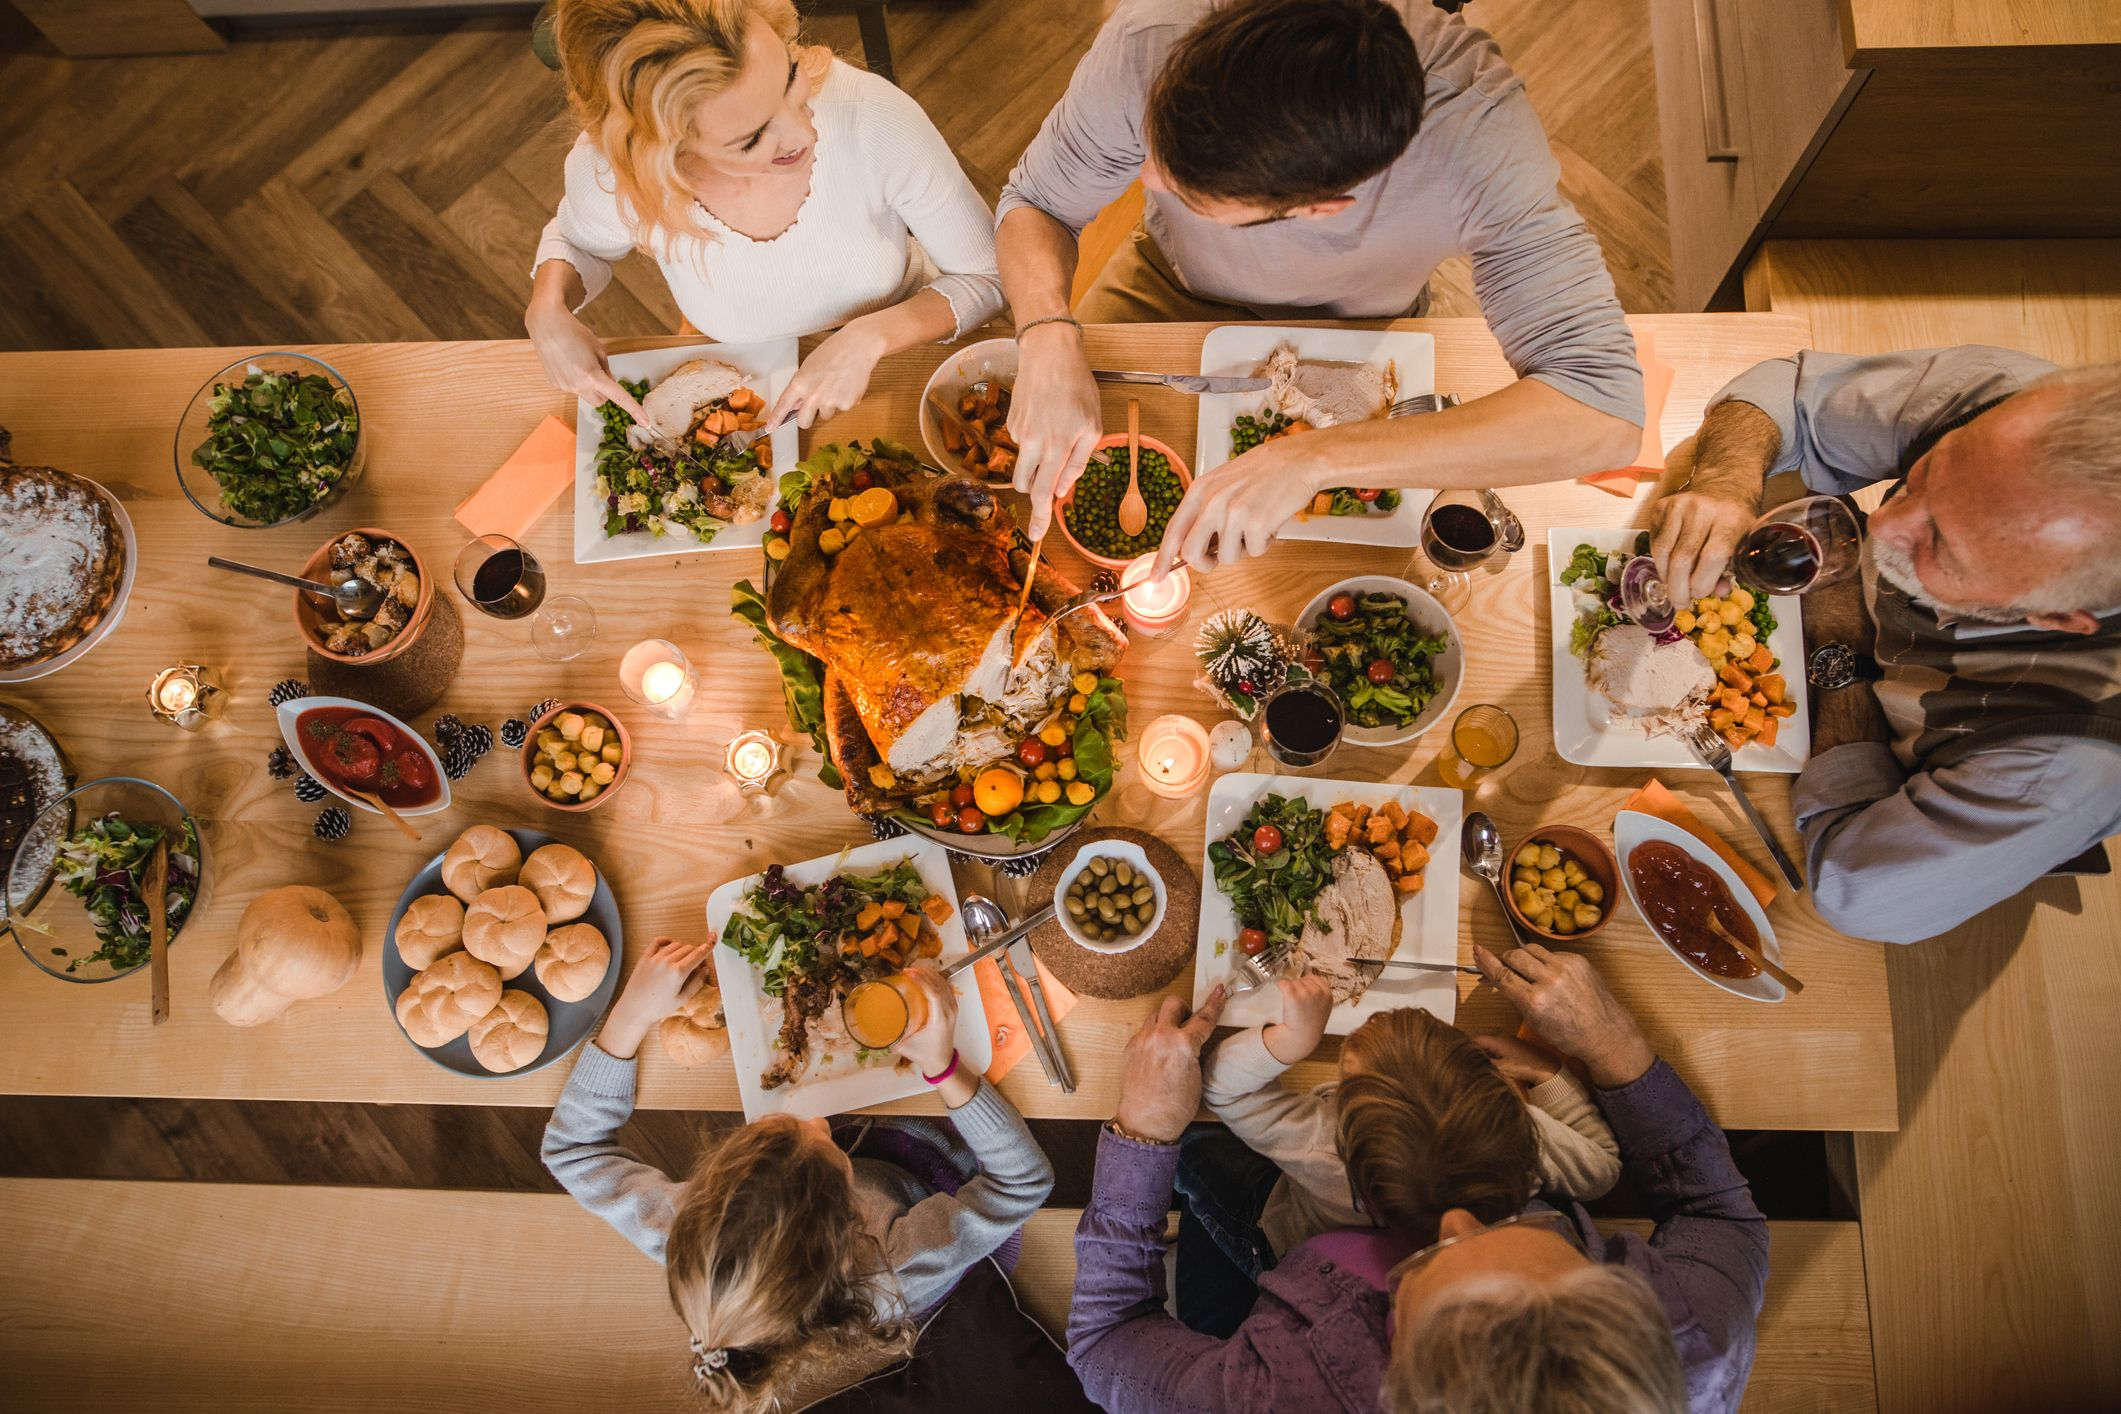 6 of the Very Best Thanksgiving Songs to Add to Your Holiday Playlist